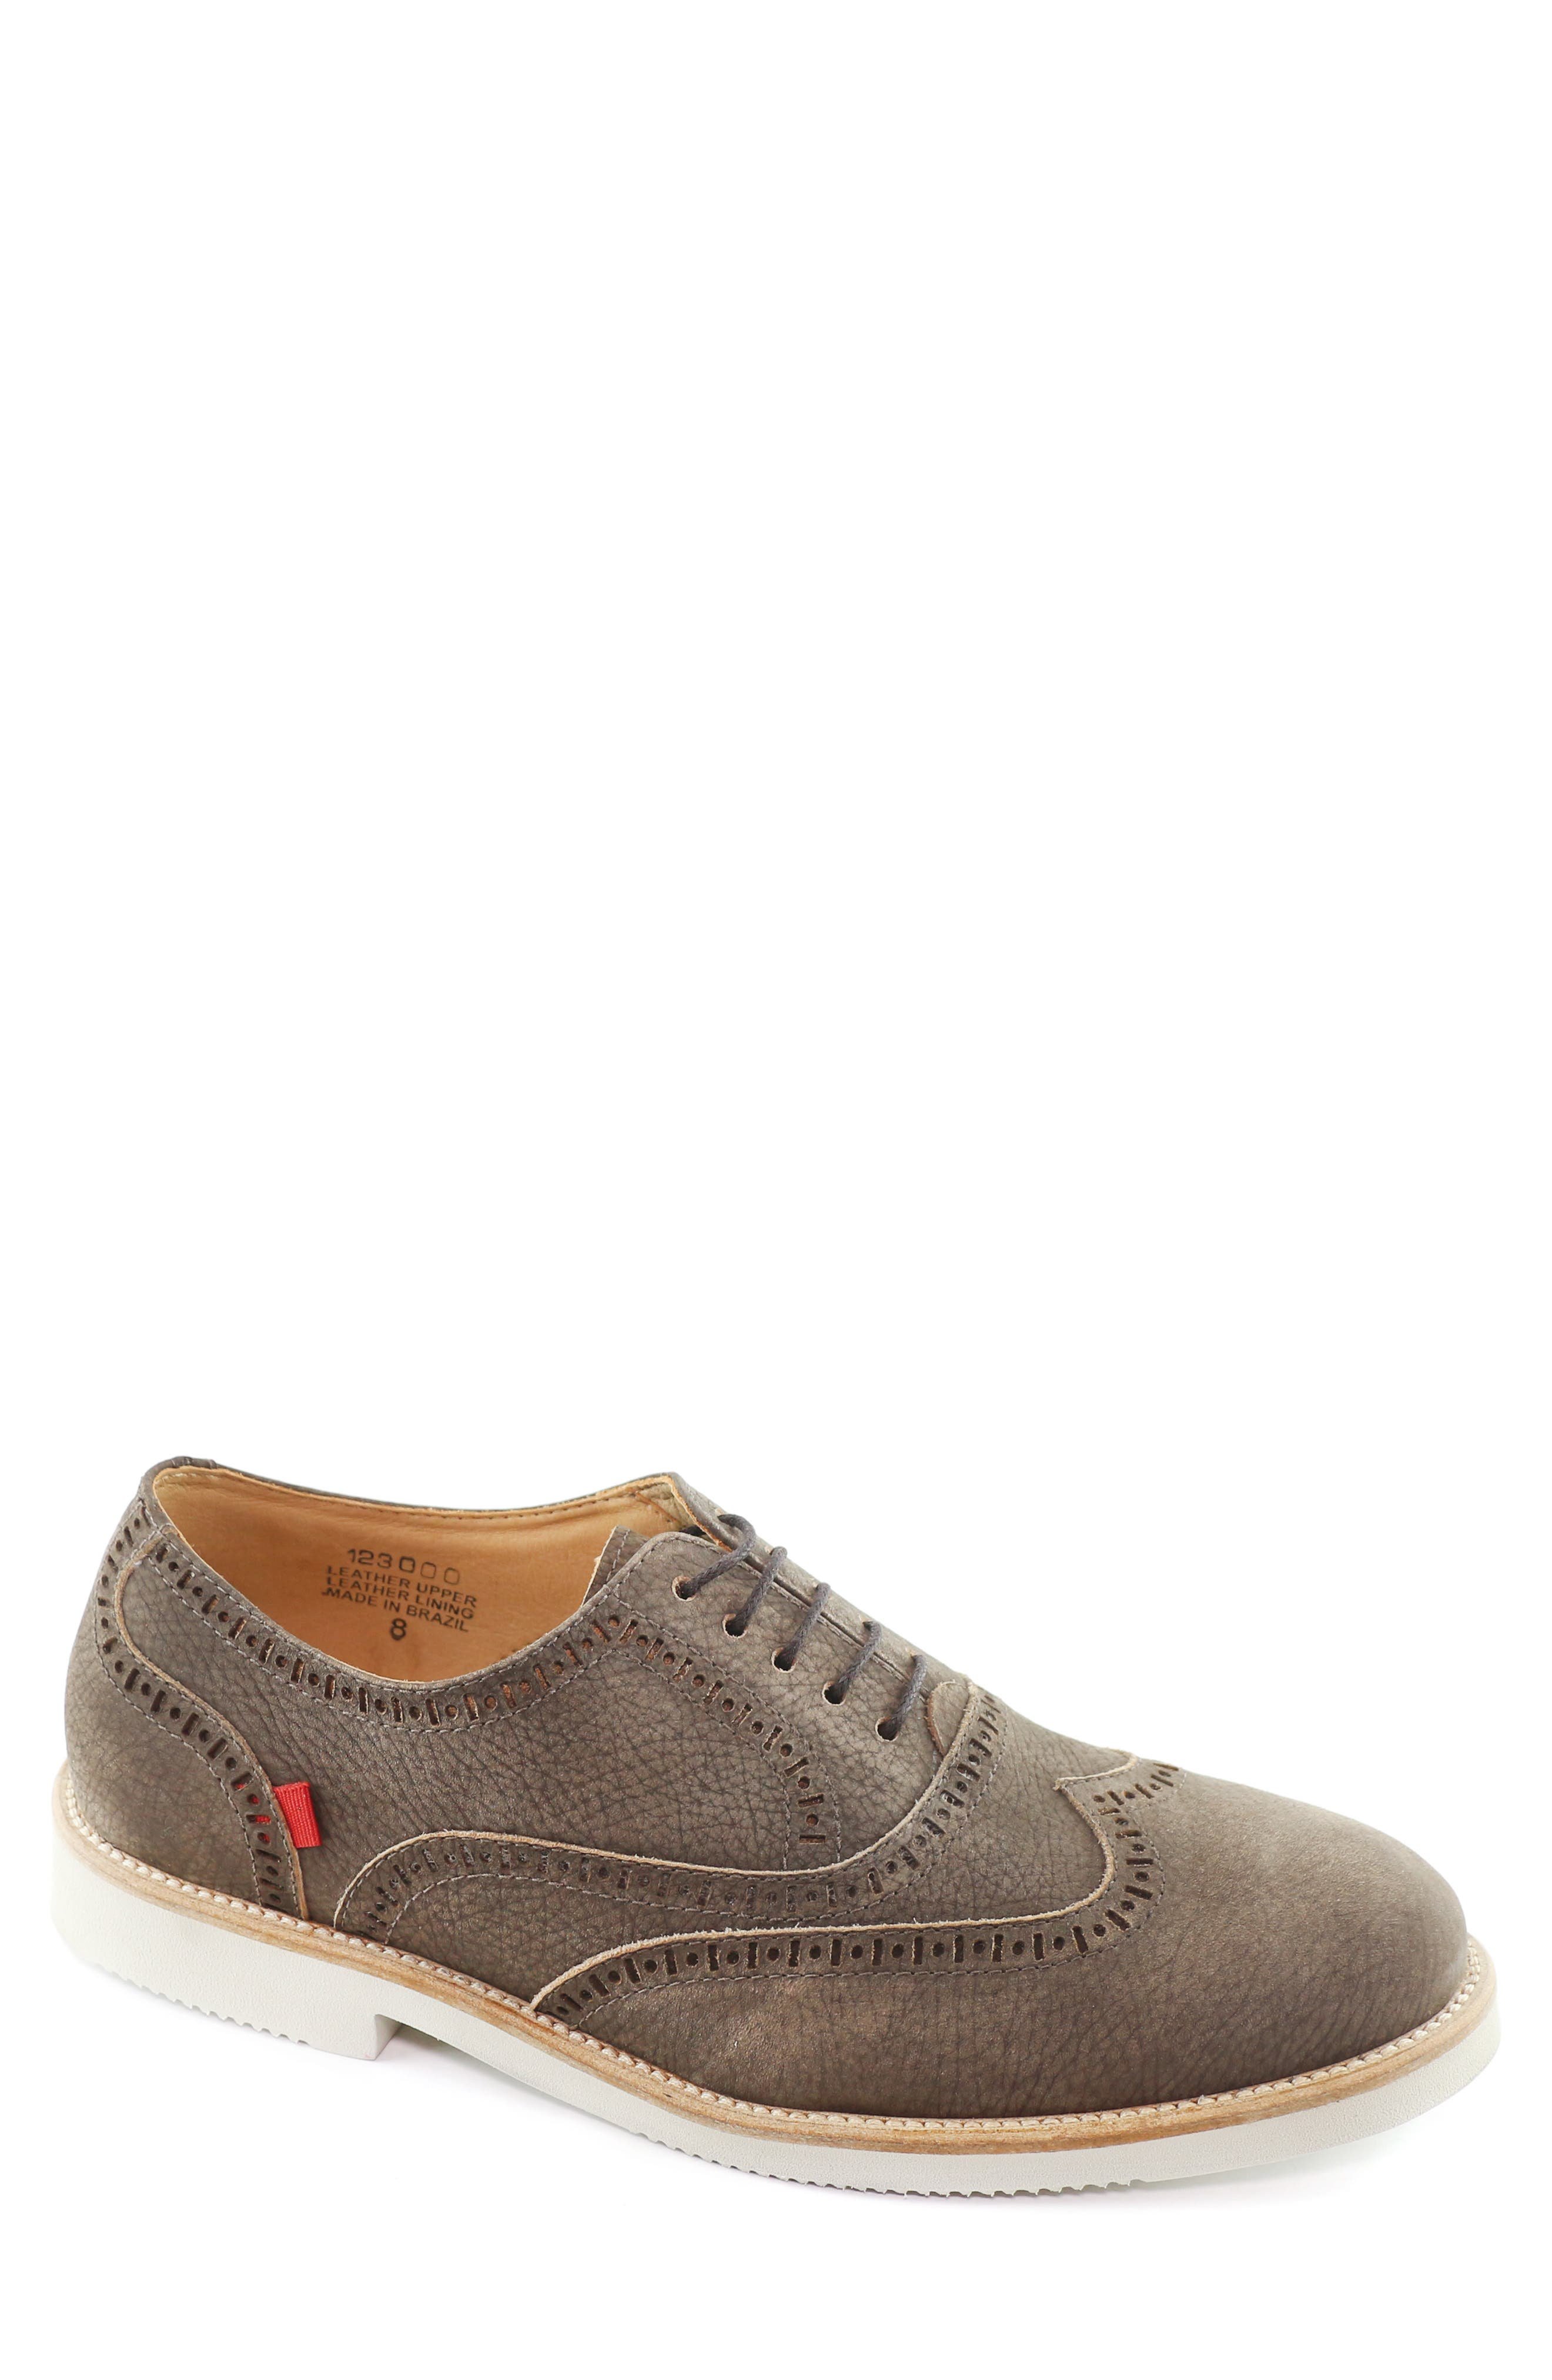 MARC JOSEPH NEW YORK, Spring Street Pebbled Wingtip Oxford, Main thumbnail 1, color, BEIGE LEATHER